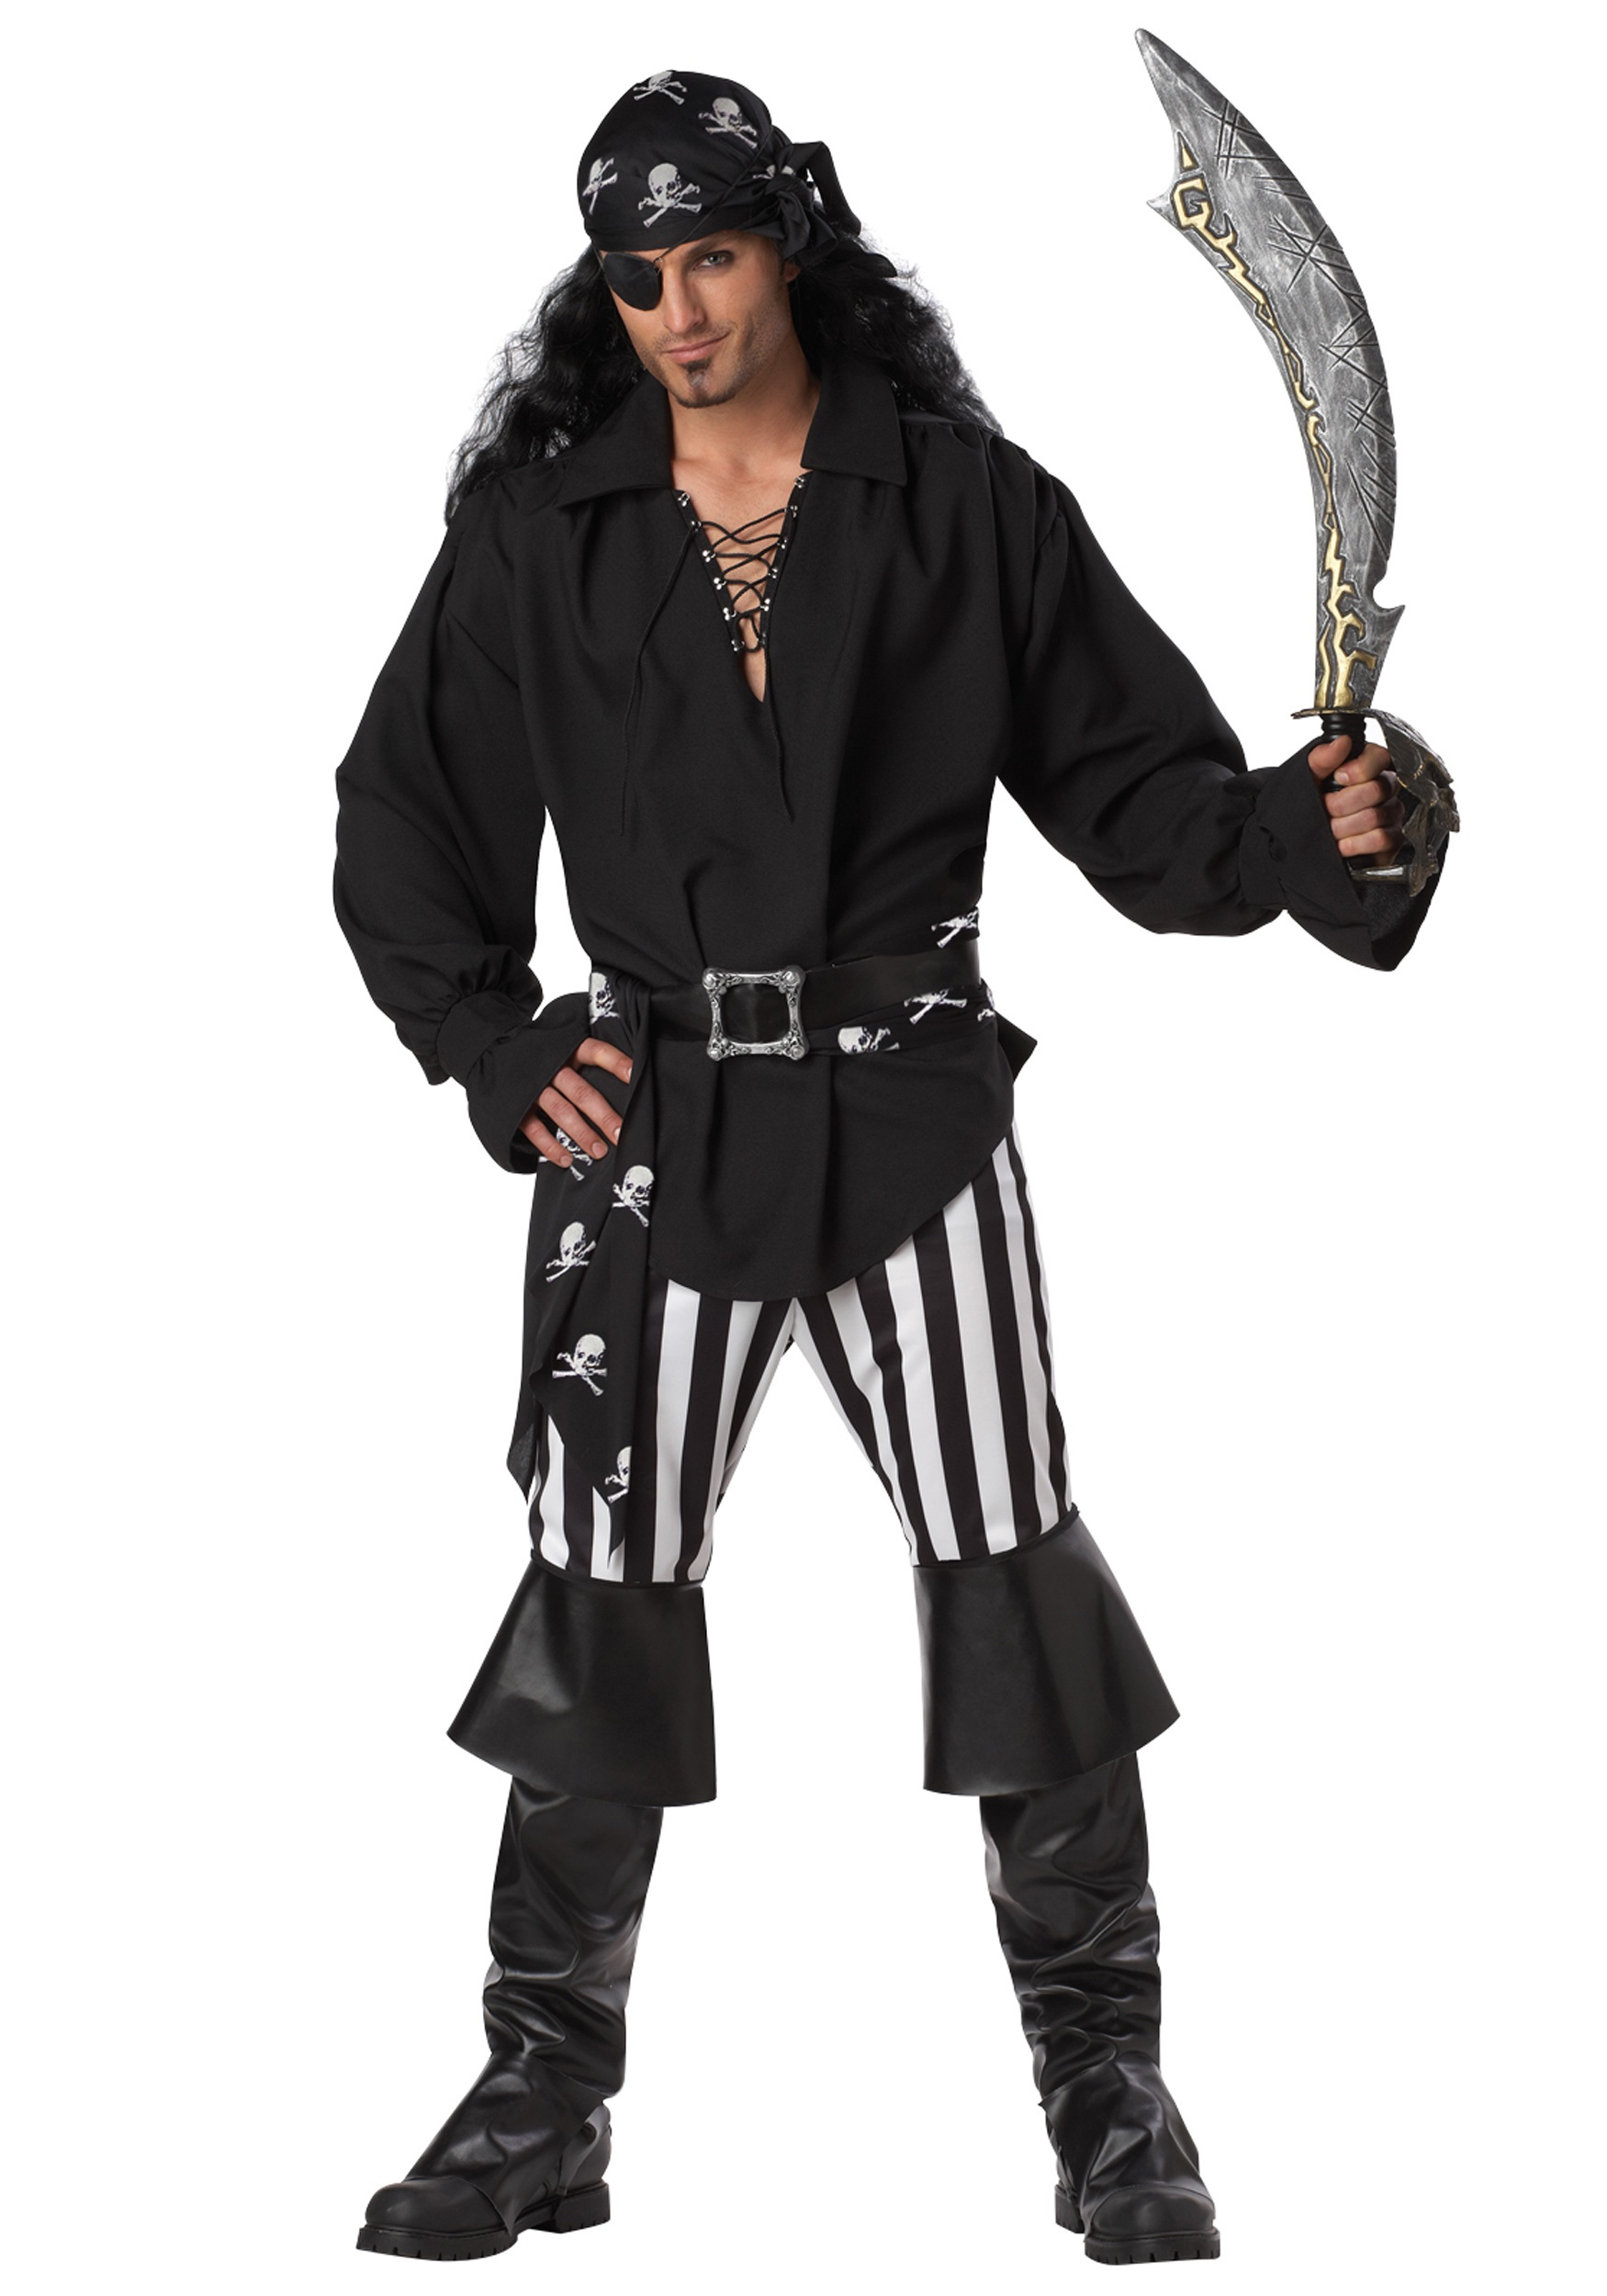 Mens Swashbuckler Pirate Costume  sc 1 st  Halloween Costumes & Mens Swashbuckler Pirate Costume - Halloween Costumes